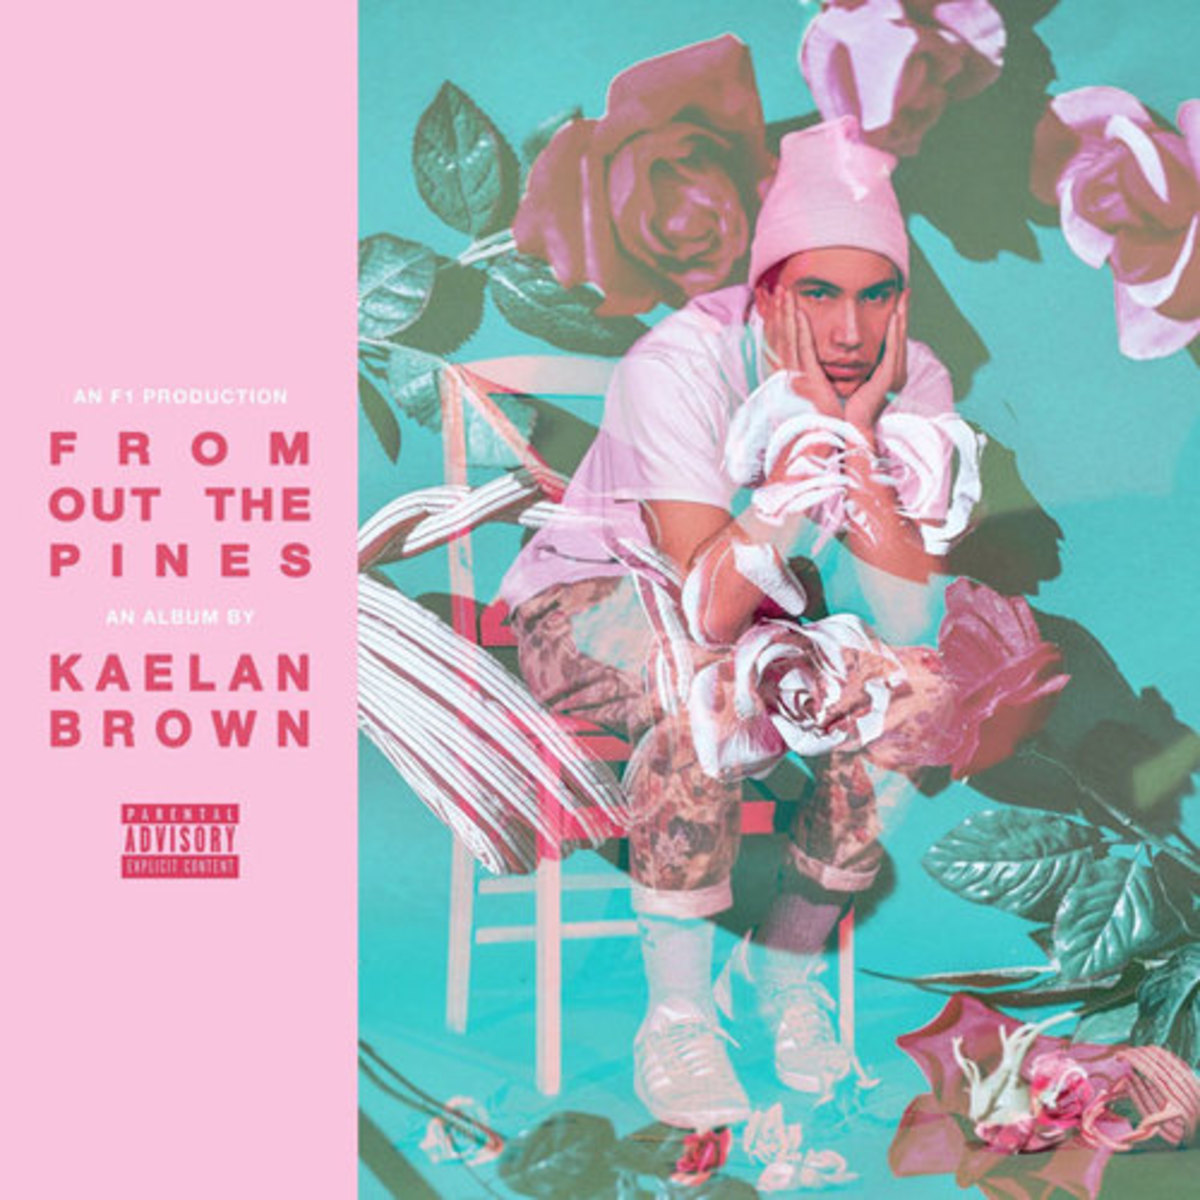 kaelan-brown-from-out-the-pines.jpg